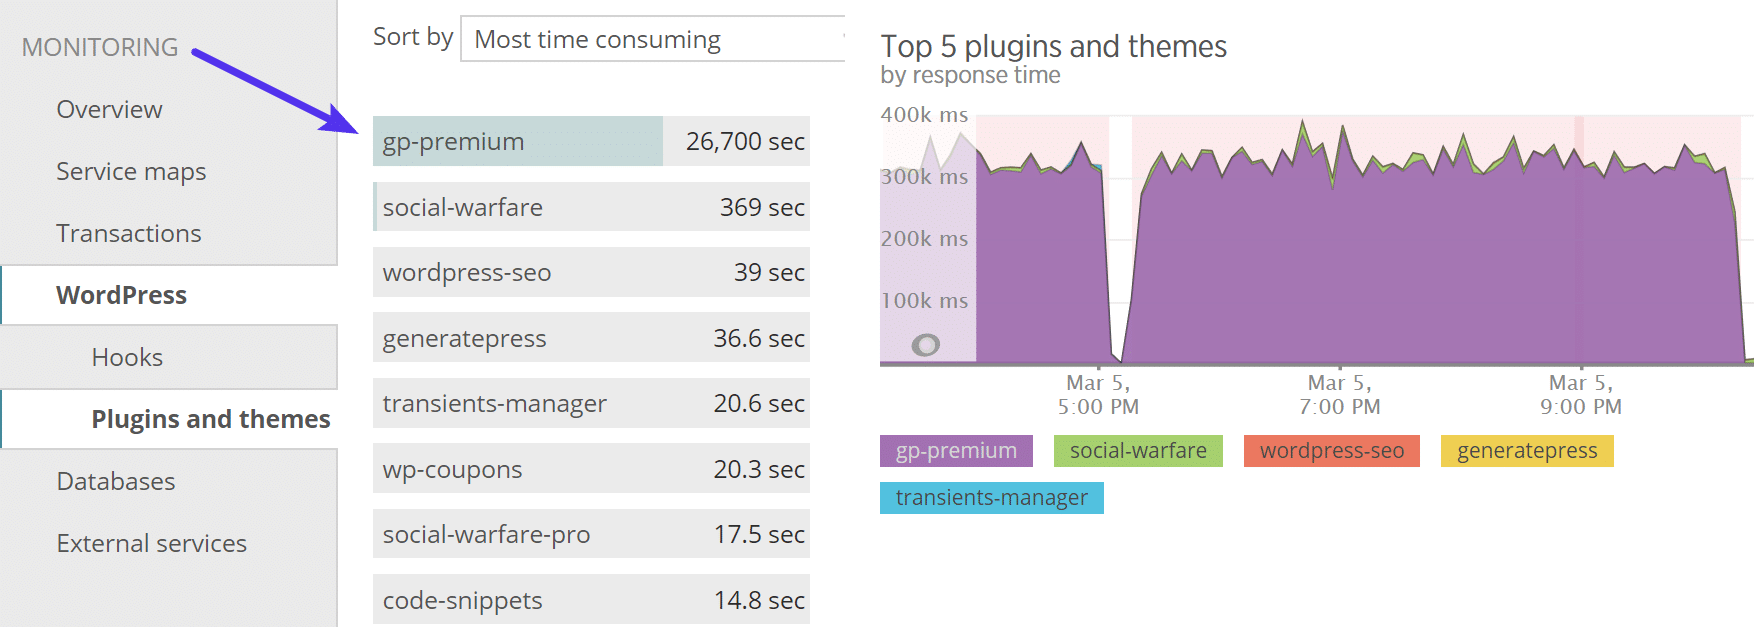 New Relic plugins and themes